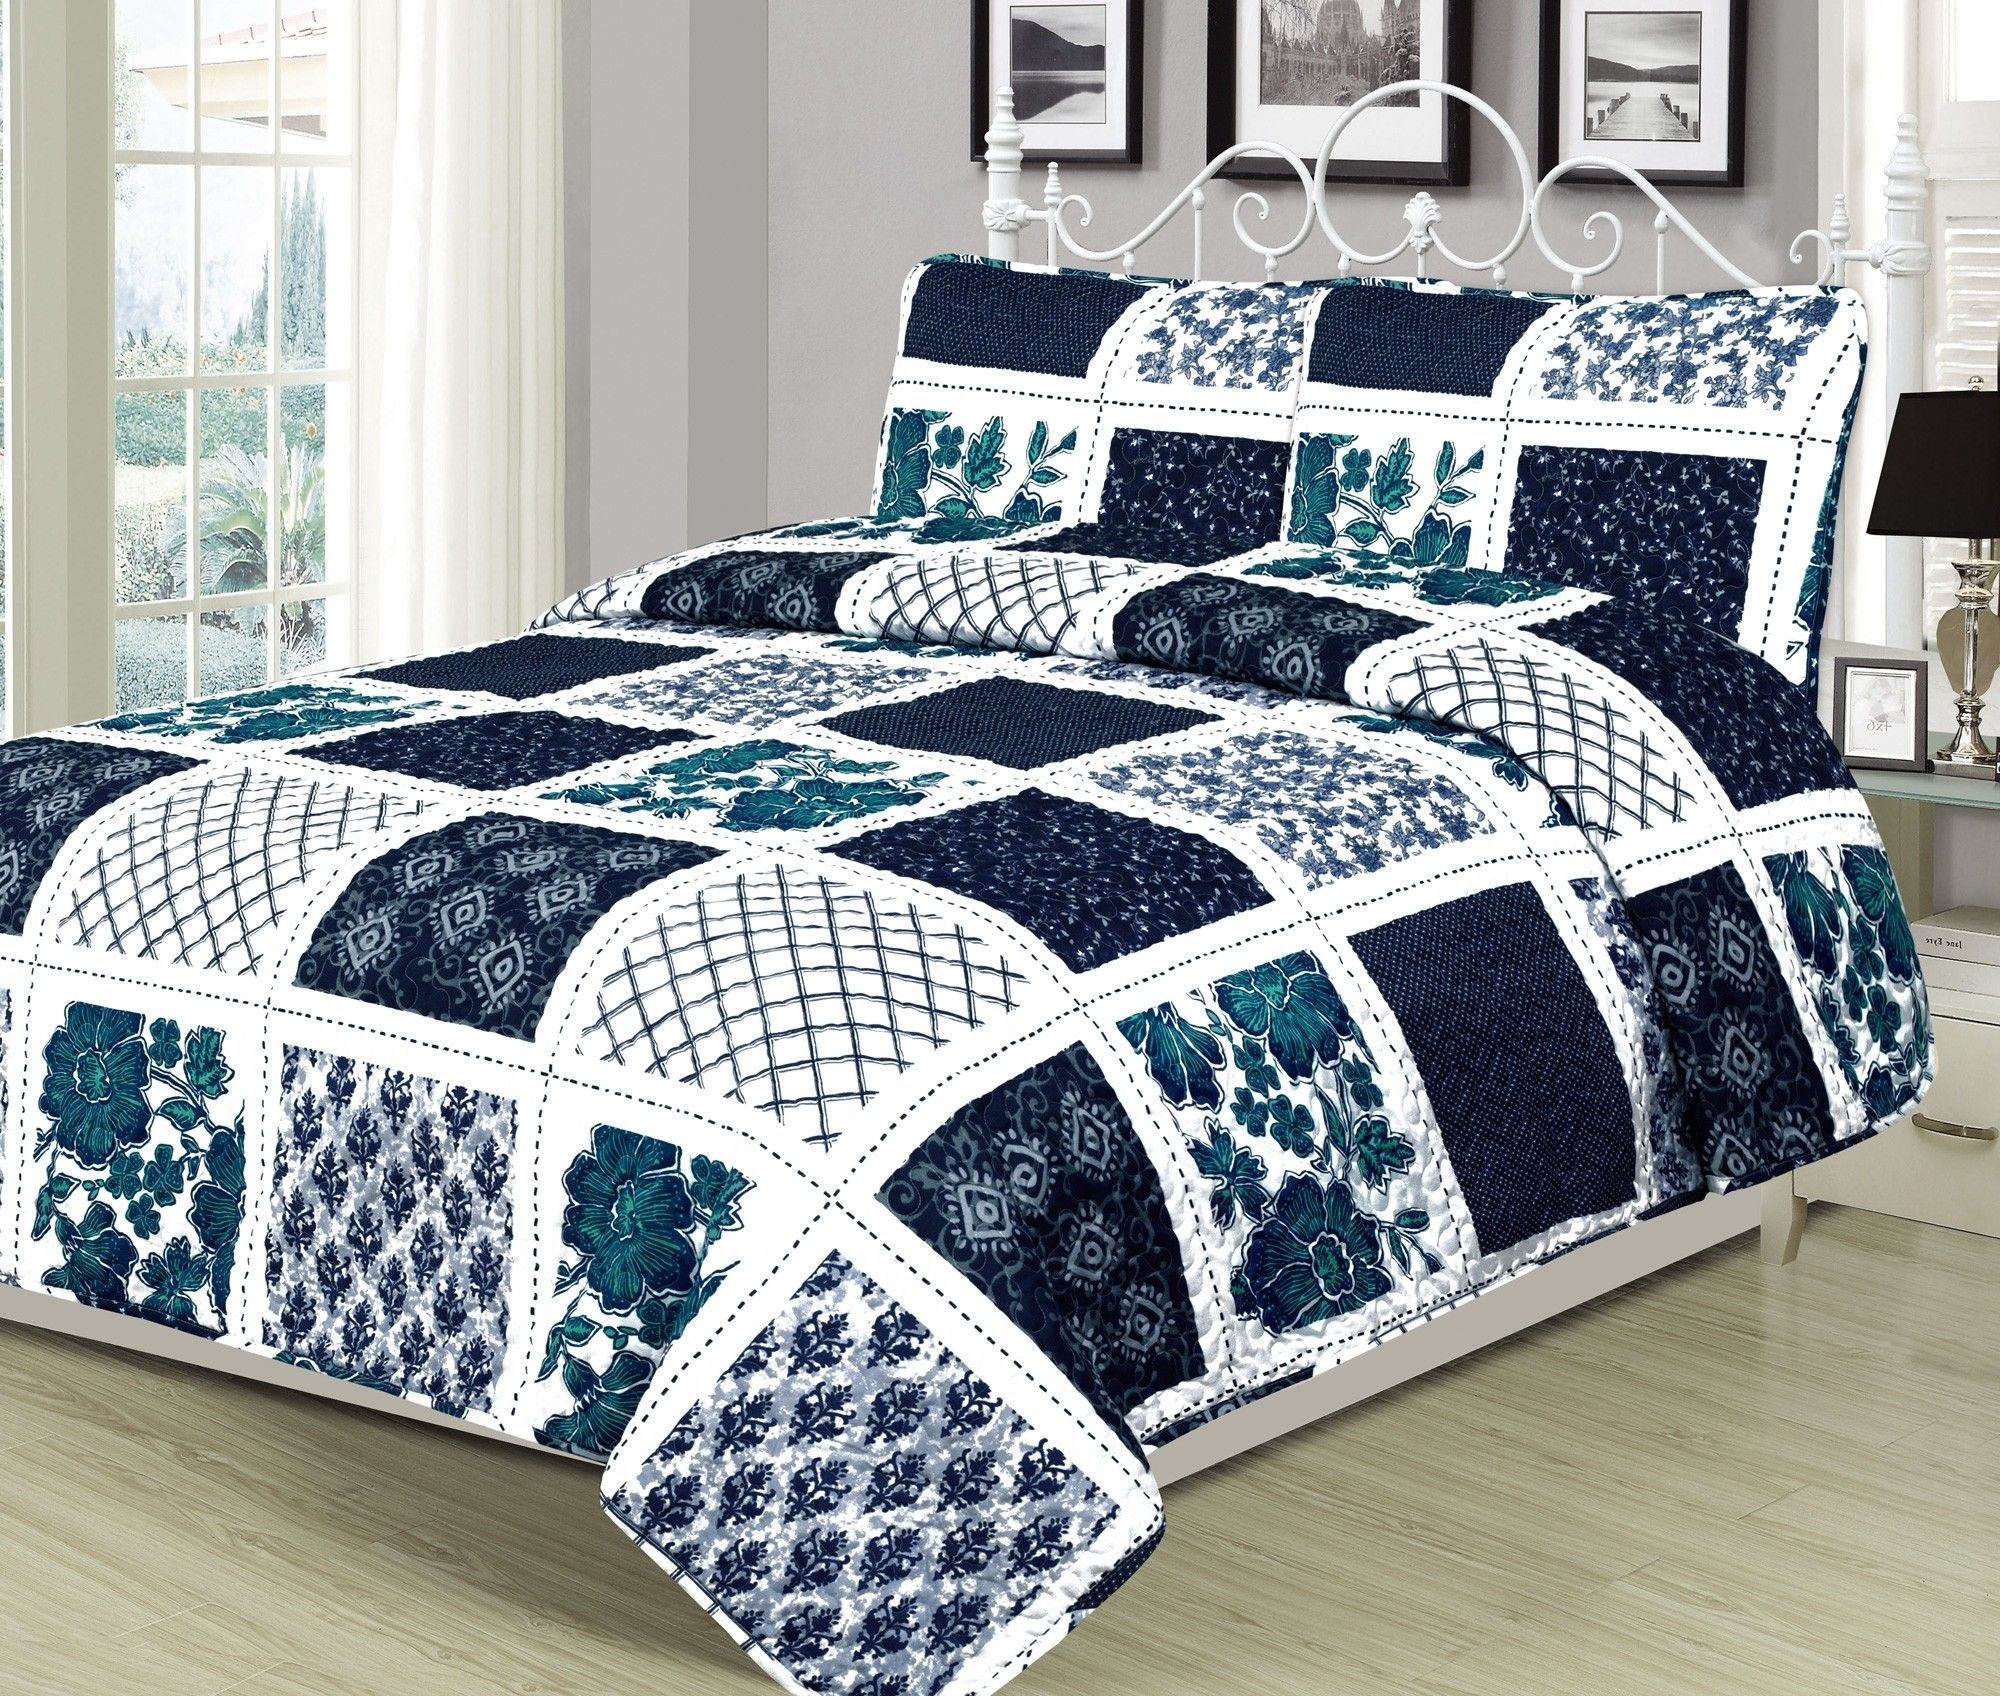 Beatrice Suma Twin Quilt Patchwork Navy Blue White And Teal Bedspread 2 Piece Set Discontinued No Longer Available Bed Spreads Teal Bedspread King Quilt